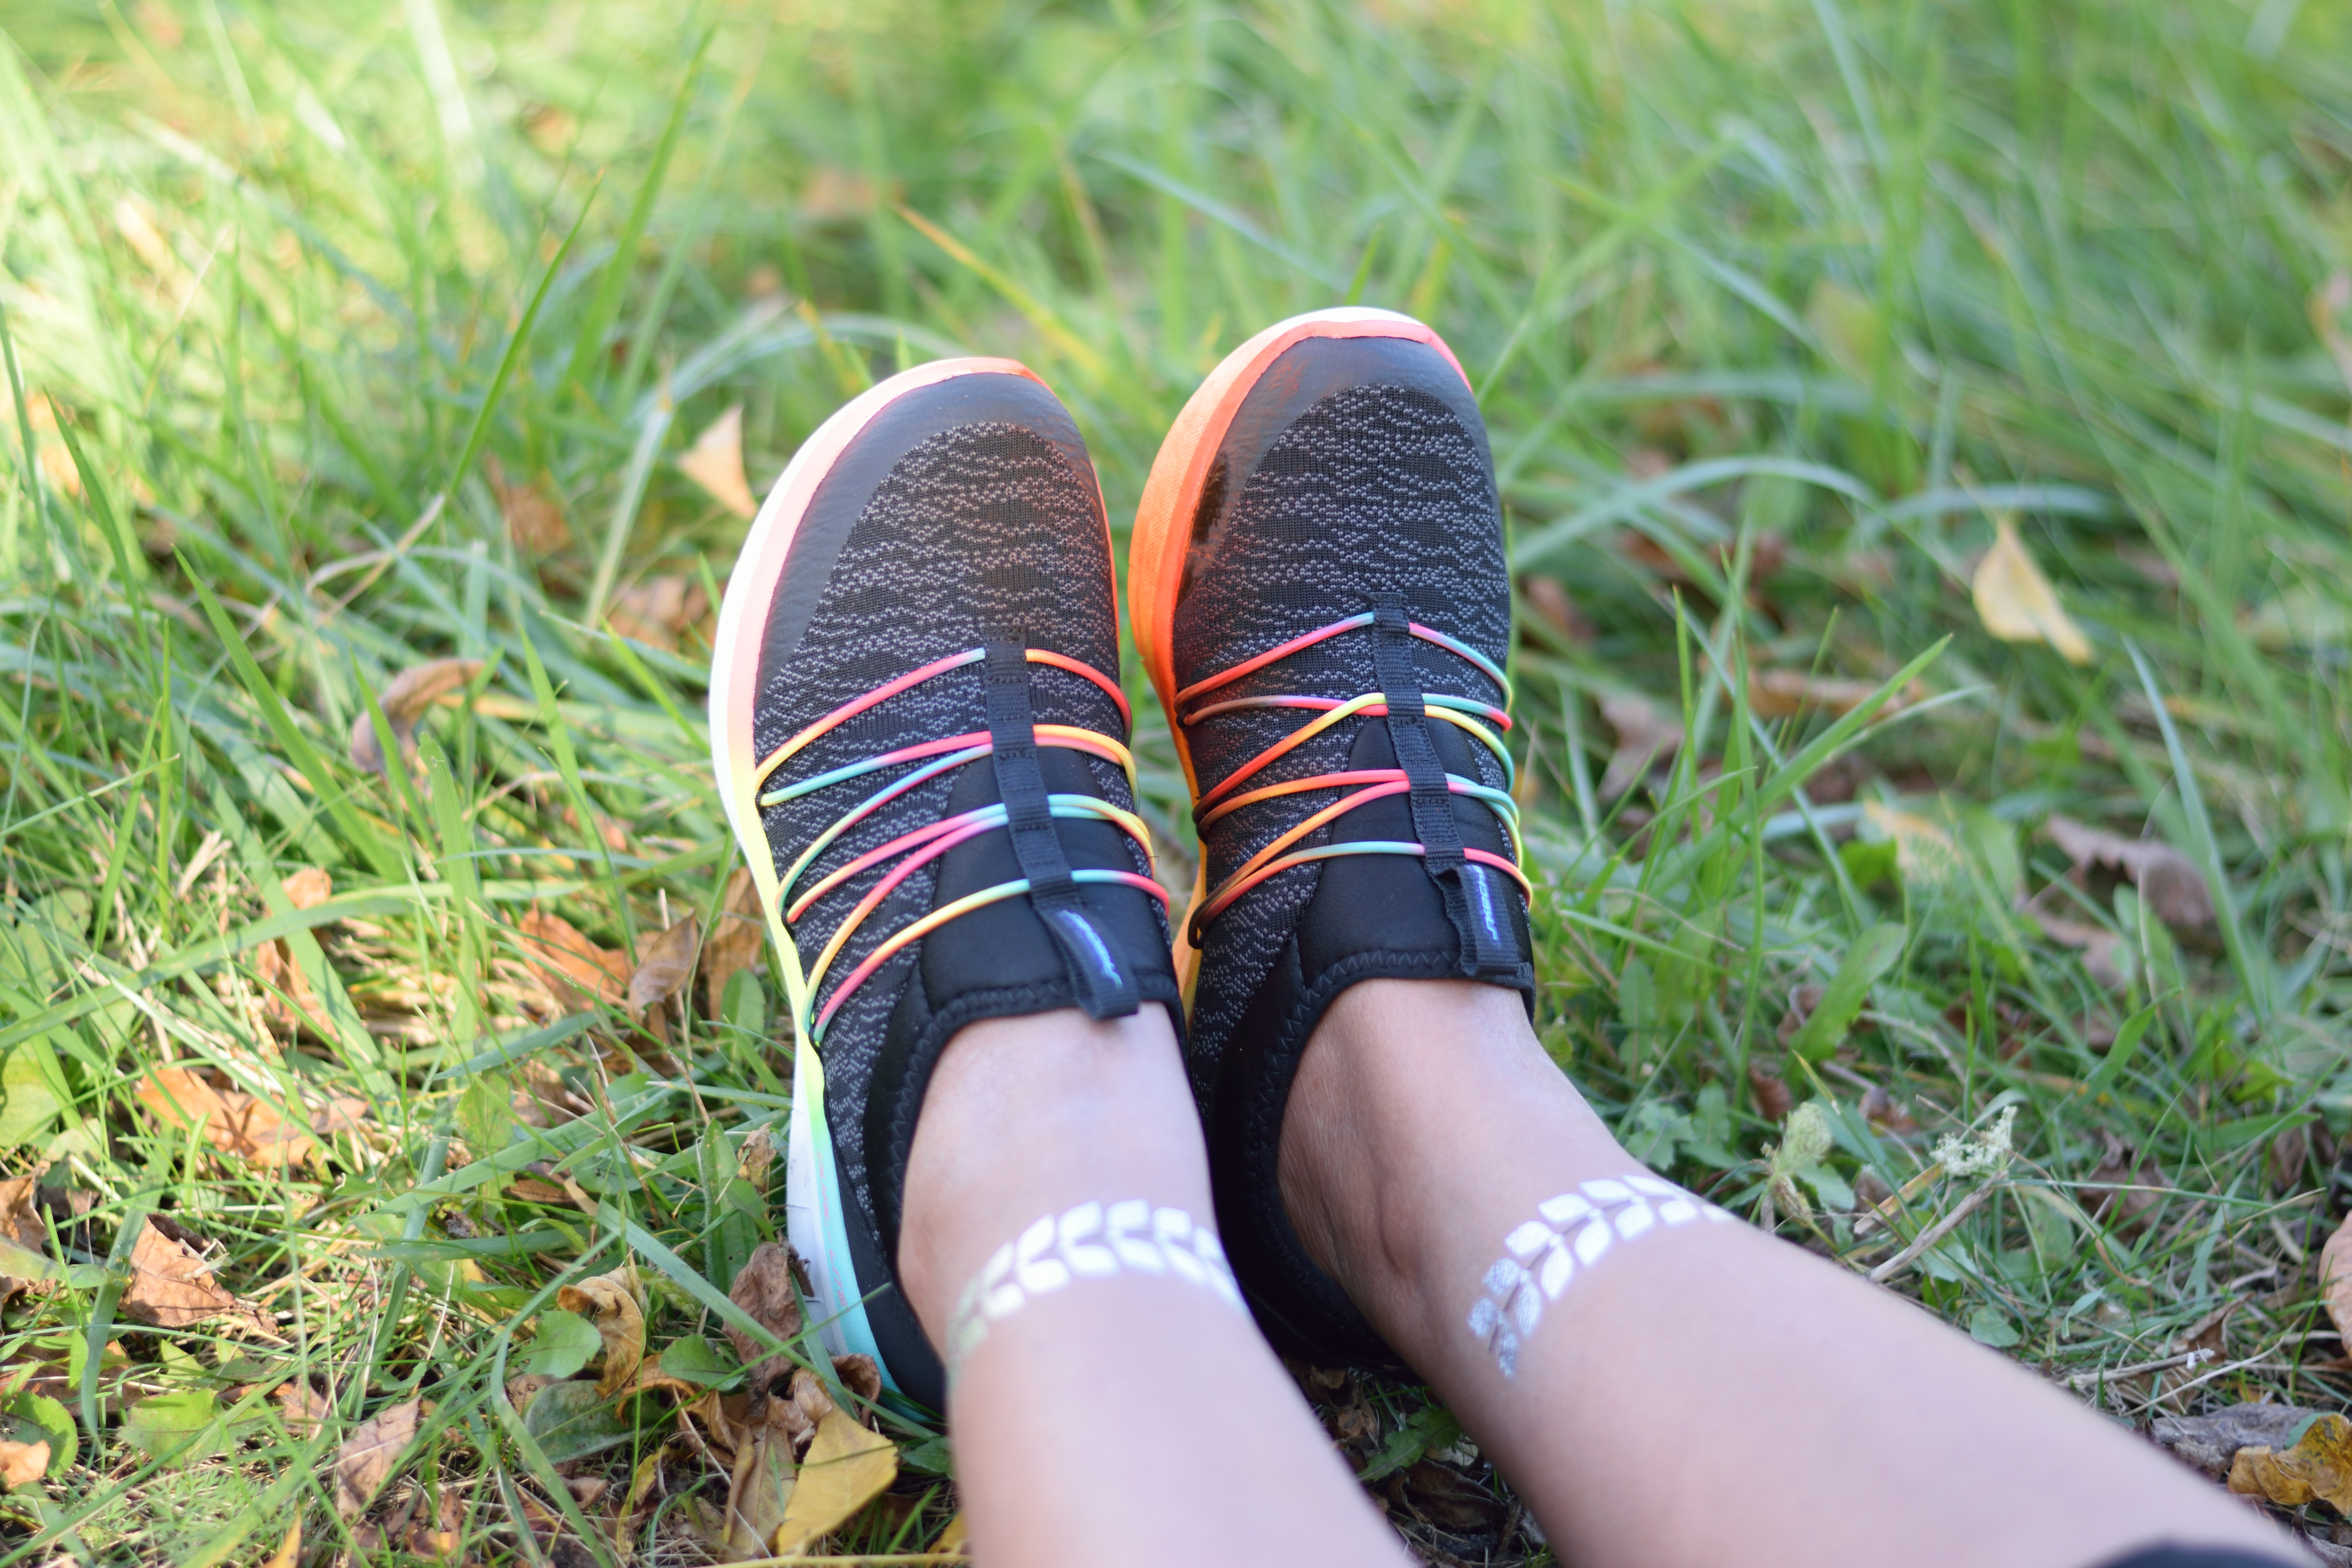 Run with style with shoes from Skechers